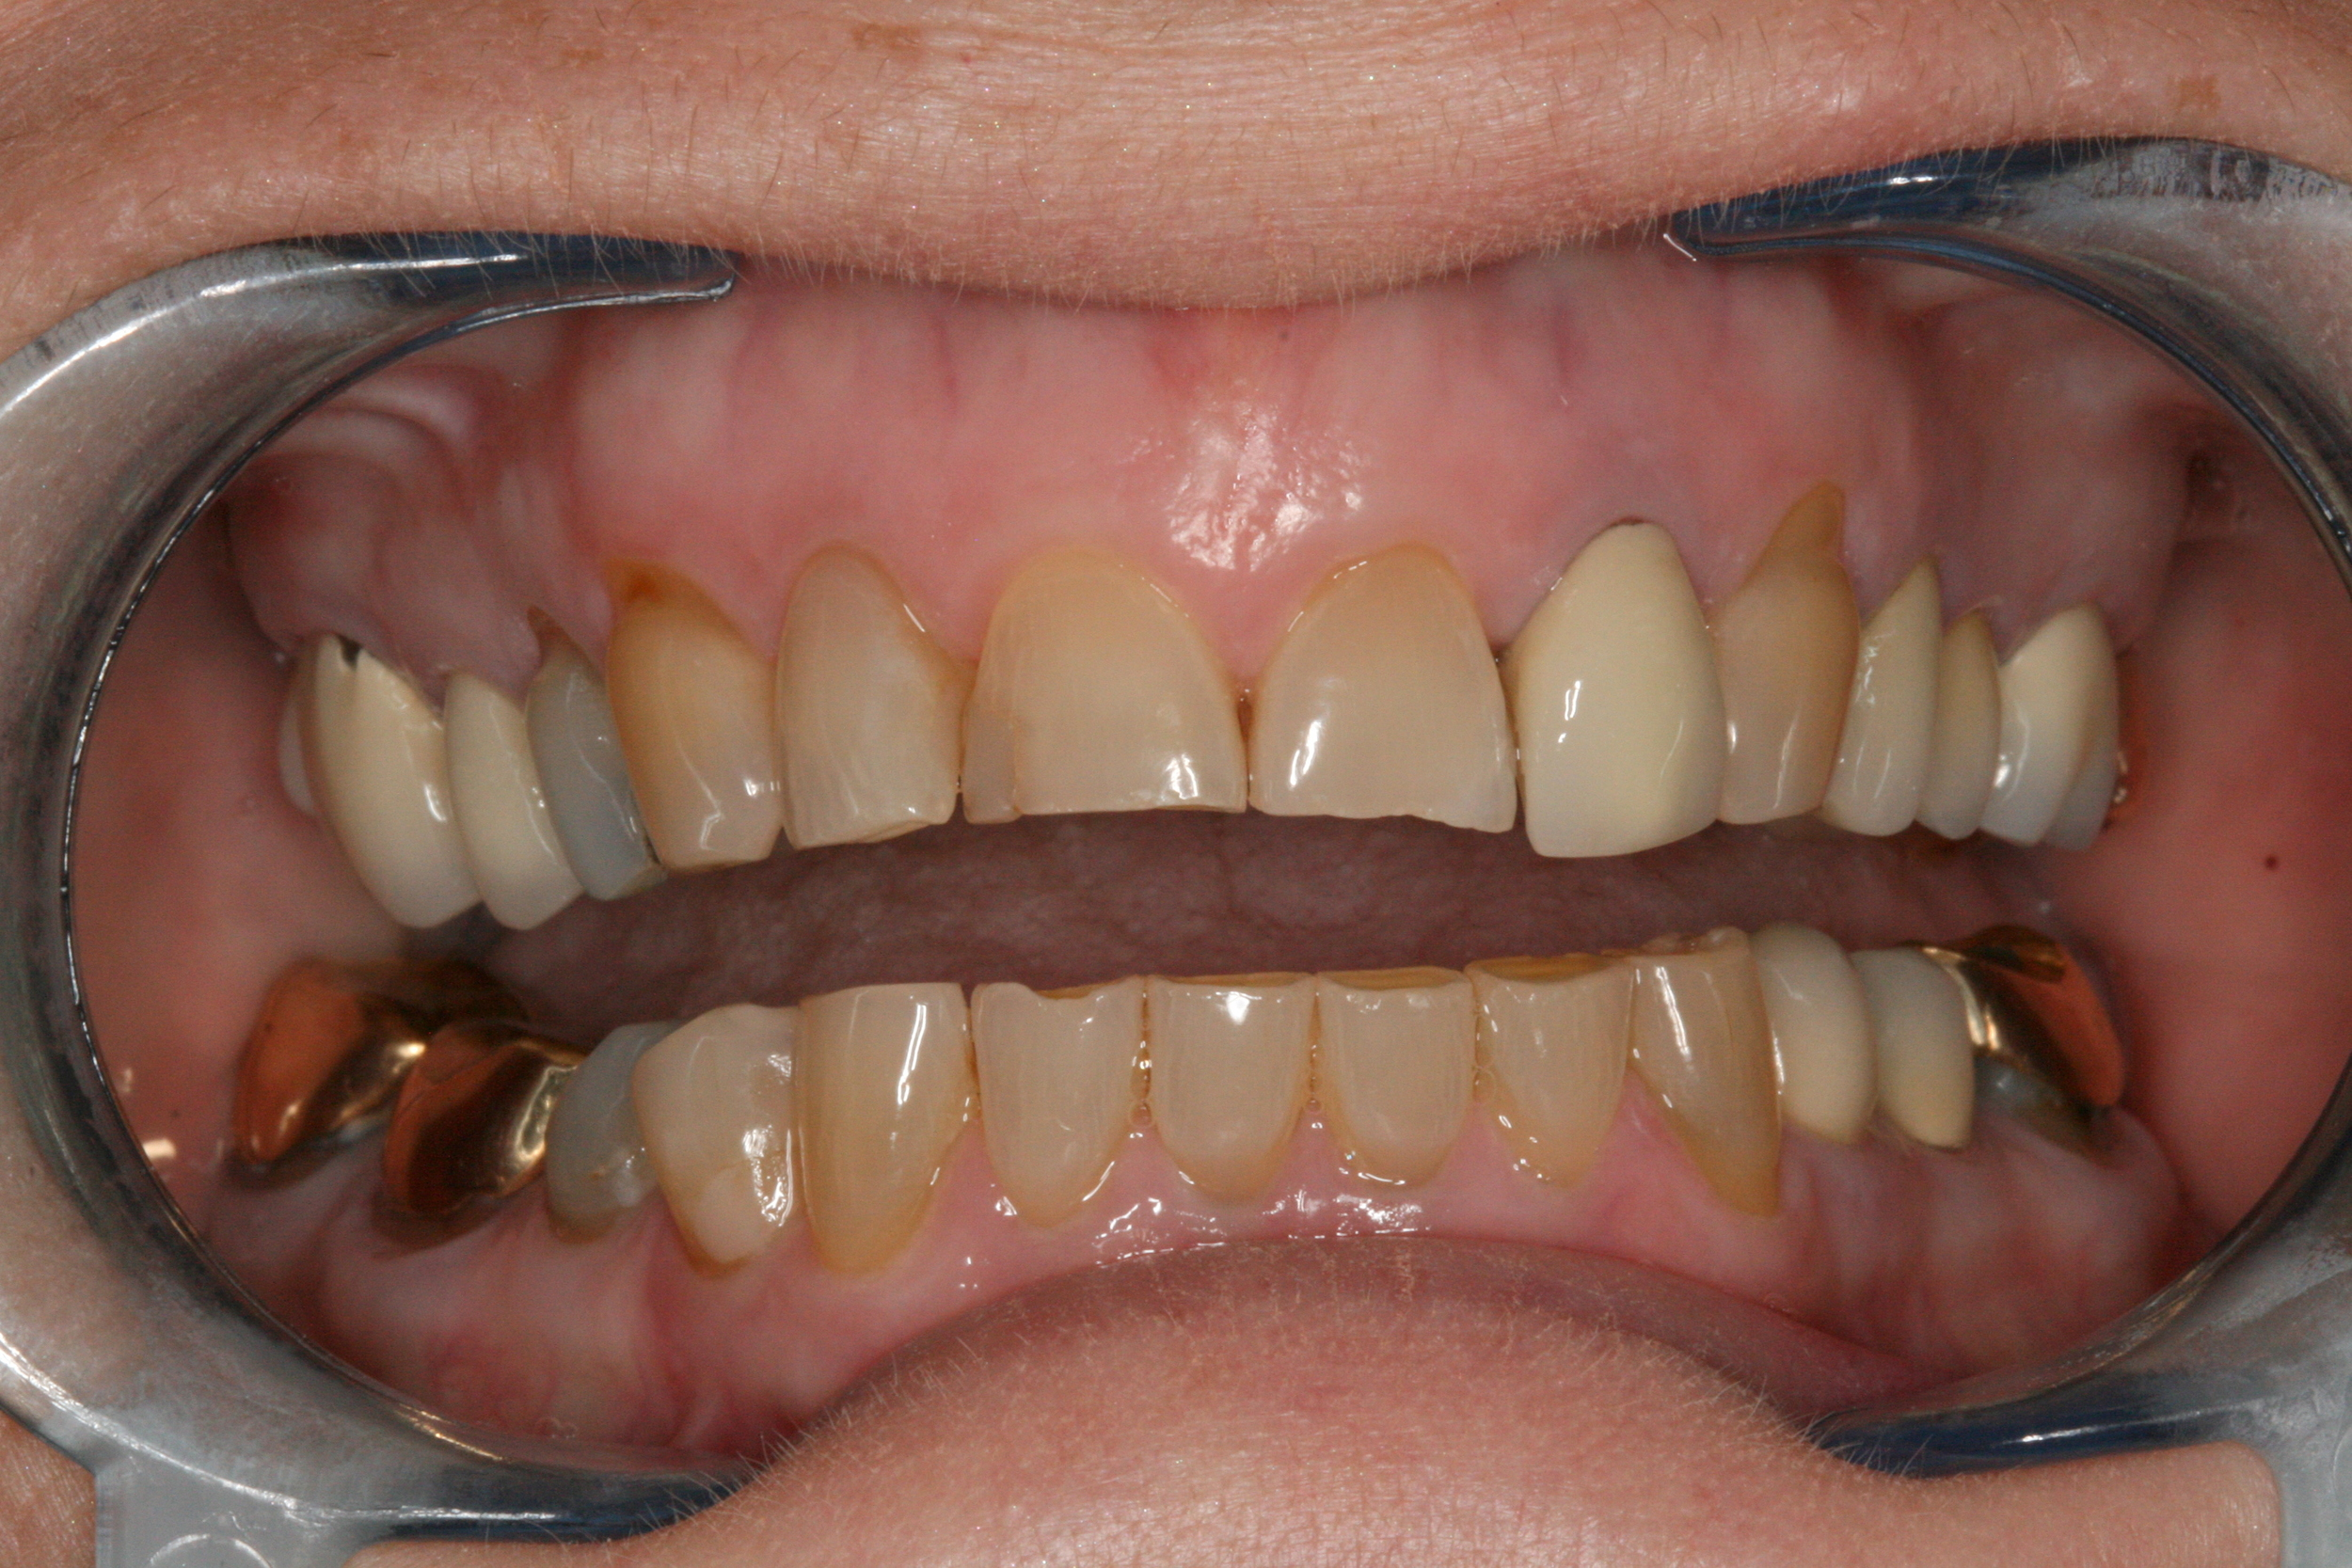 The_Tuddenham_Road_Dental_Surgery_Veneers.JPG